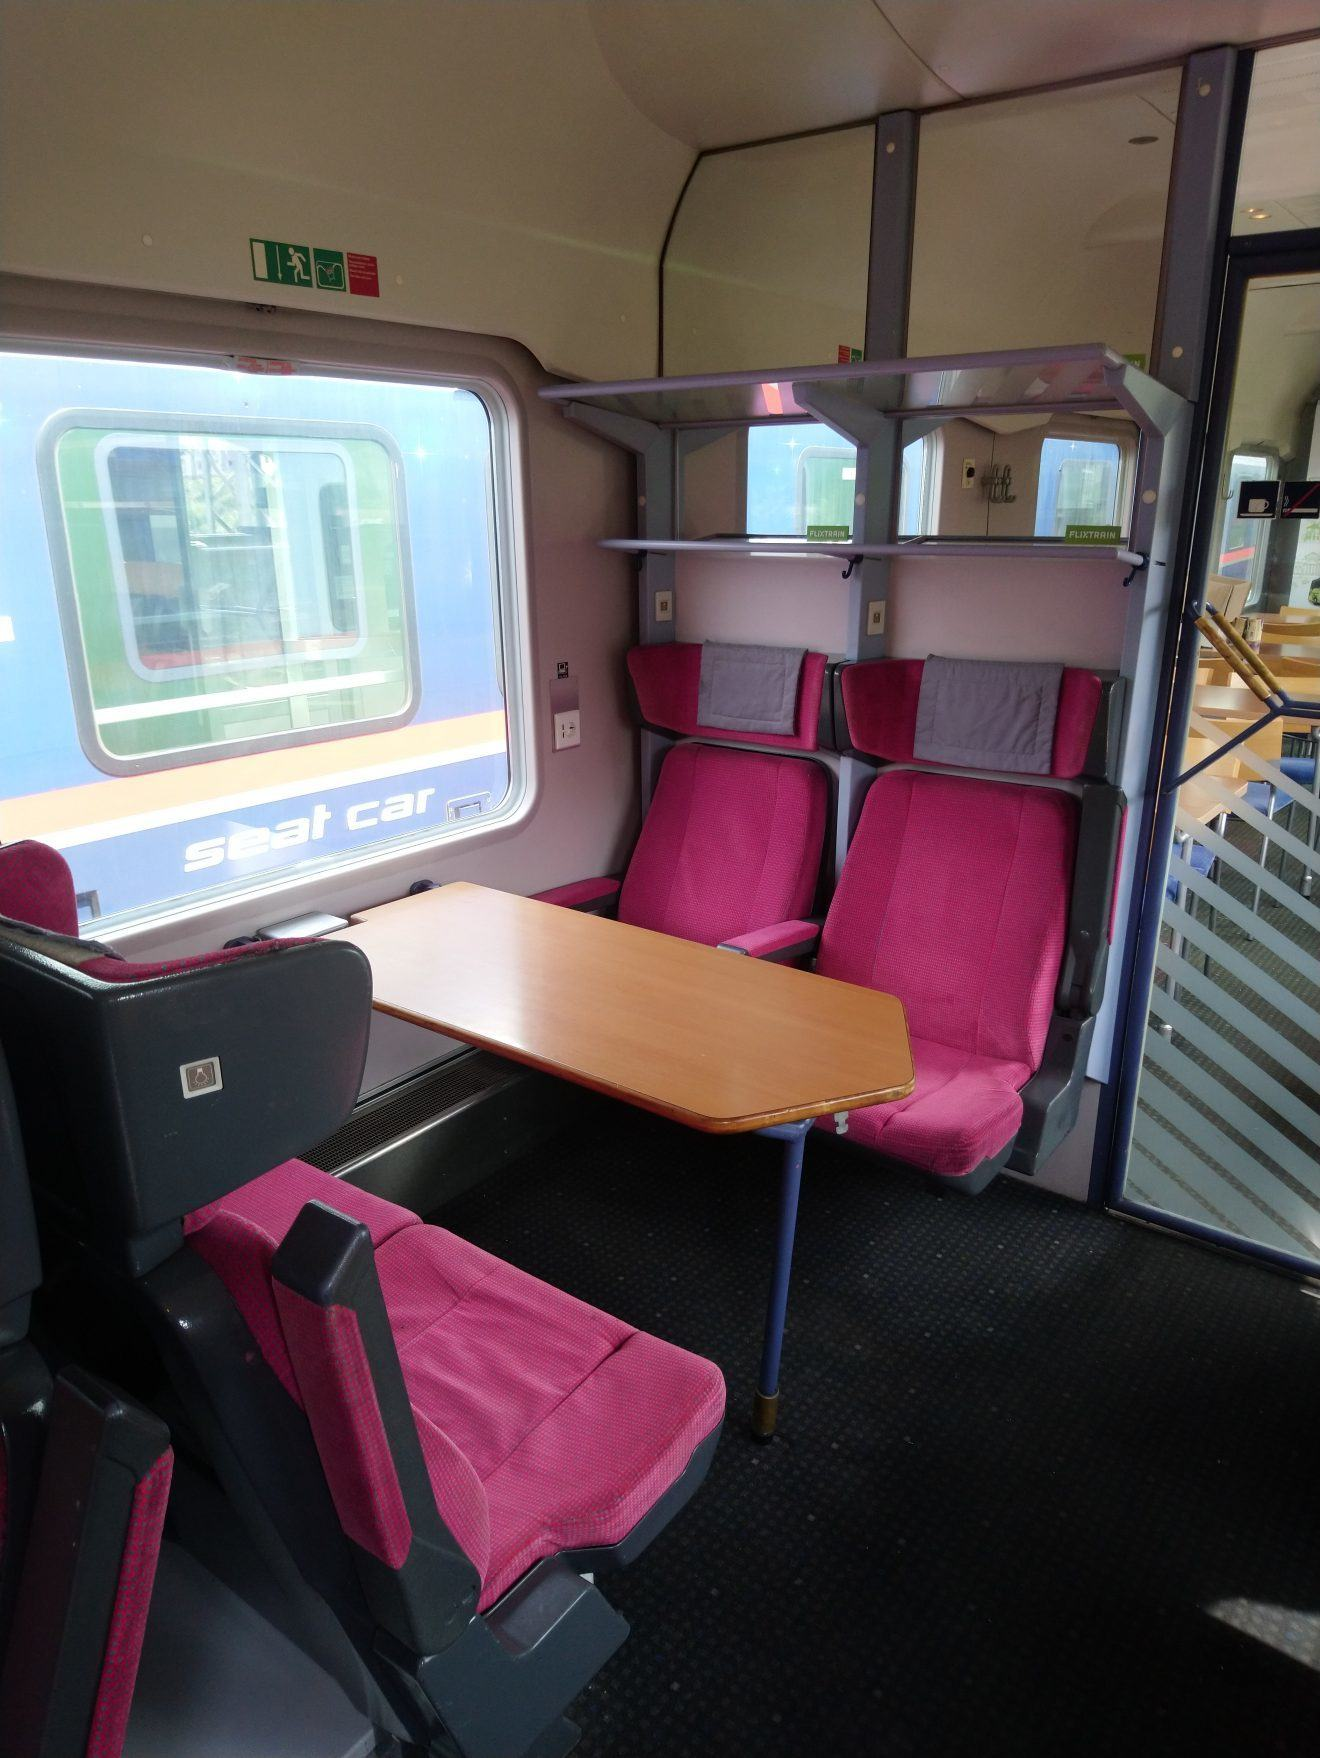 Flixtrain Bistro car